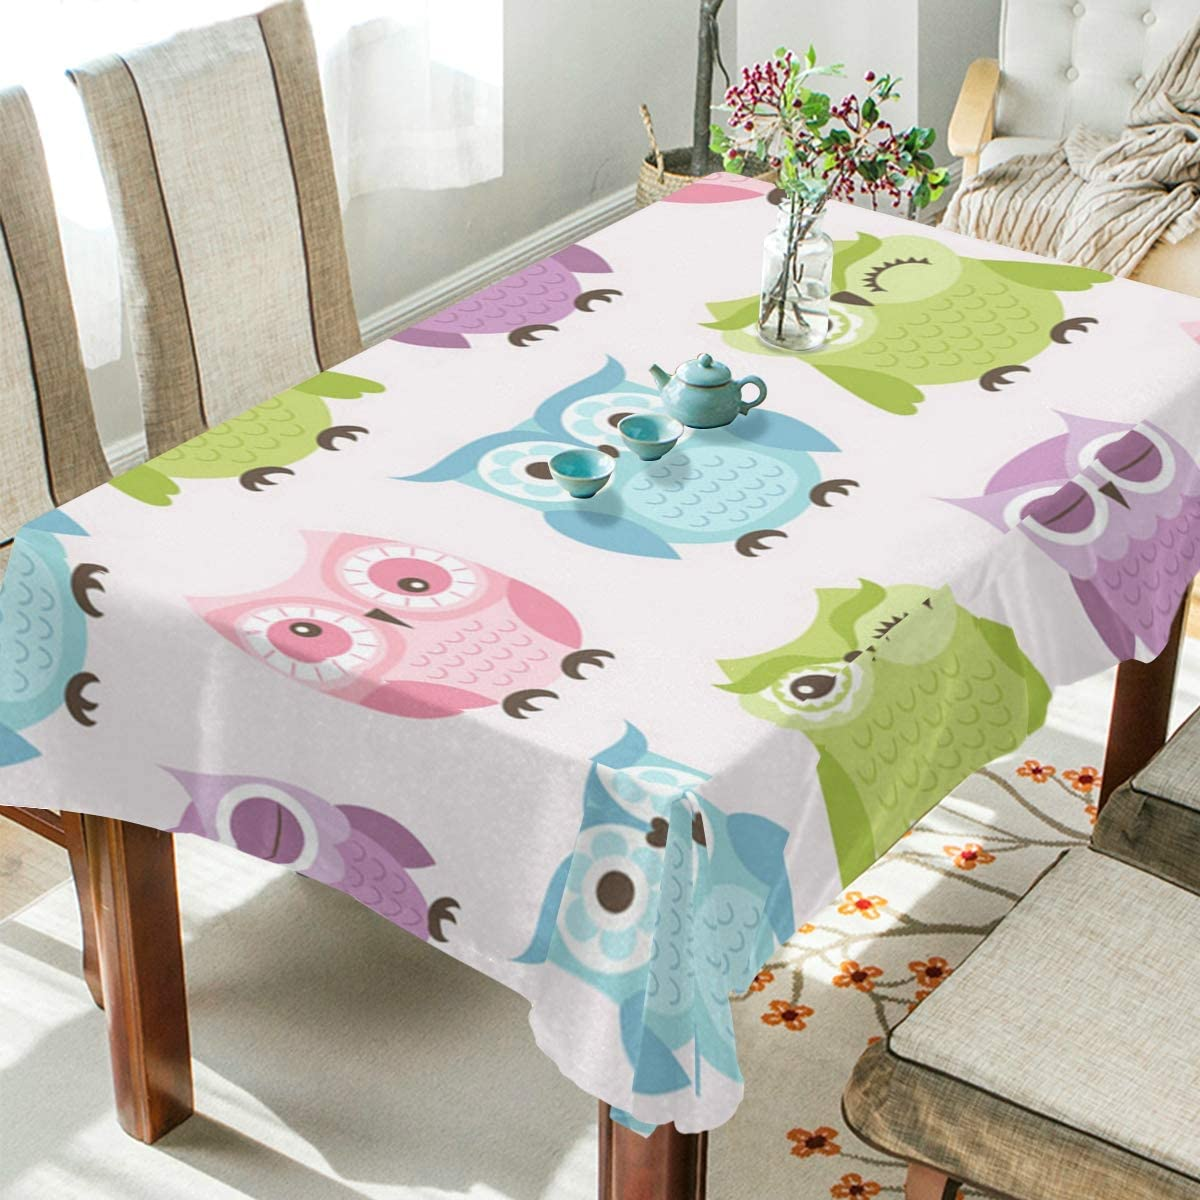 ALAZA Rectangle Tablecloth Cute Colorful Owls for Kids Washable Spill Proof Table Cloth Dust-Proof Table Cover for Kitchen Dining Room Party Tablecovers Spread Home Decoration 54 x 54 Inches